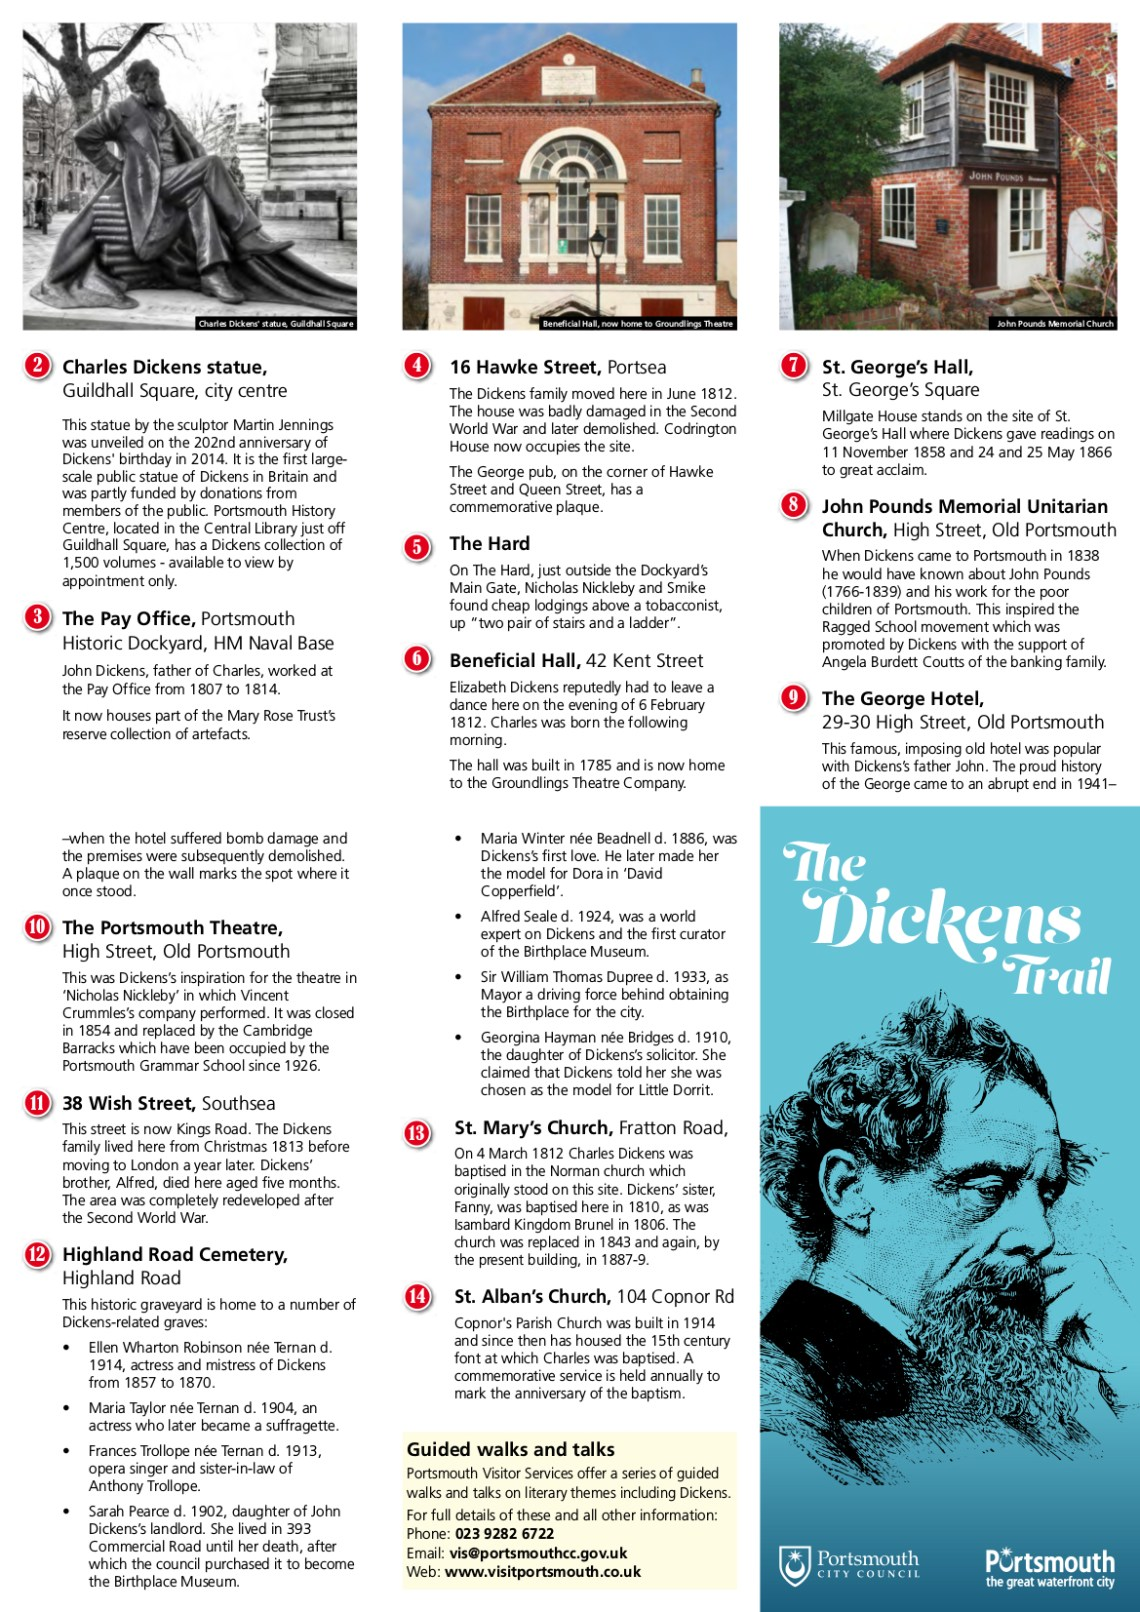 Dickens-trail-leaflet-July-2014-v3